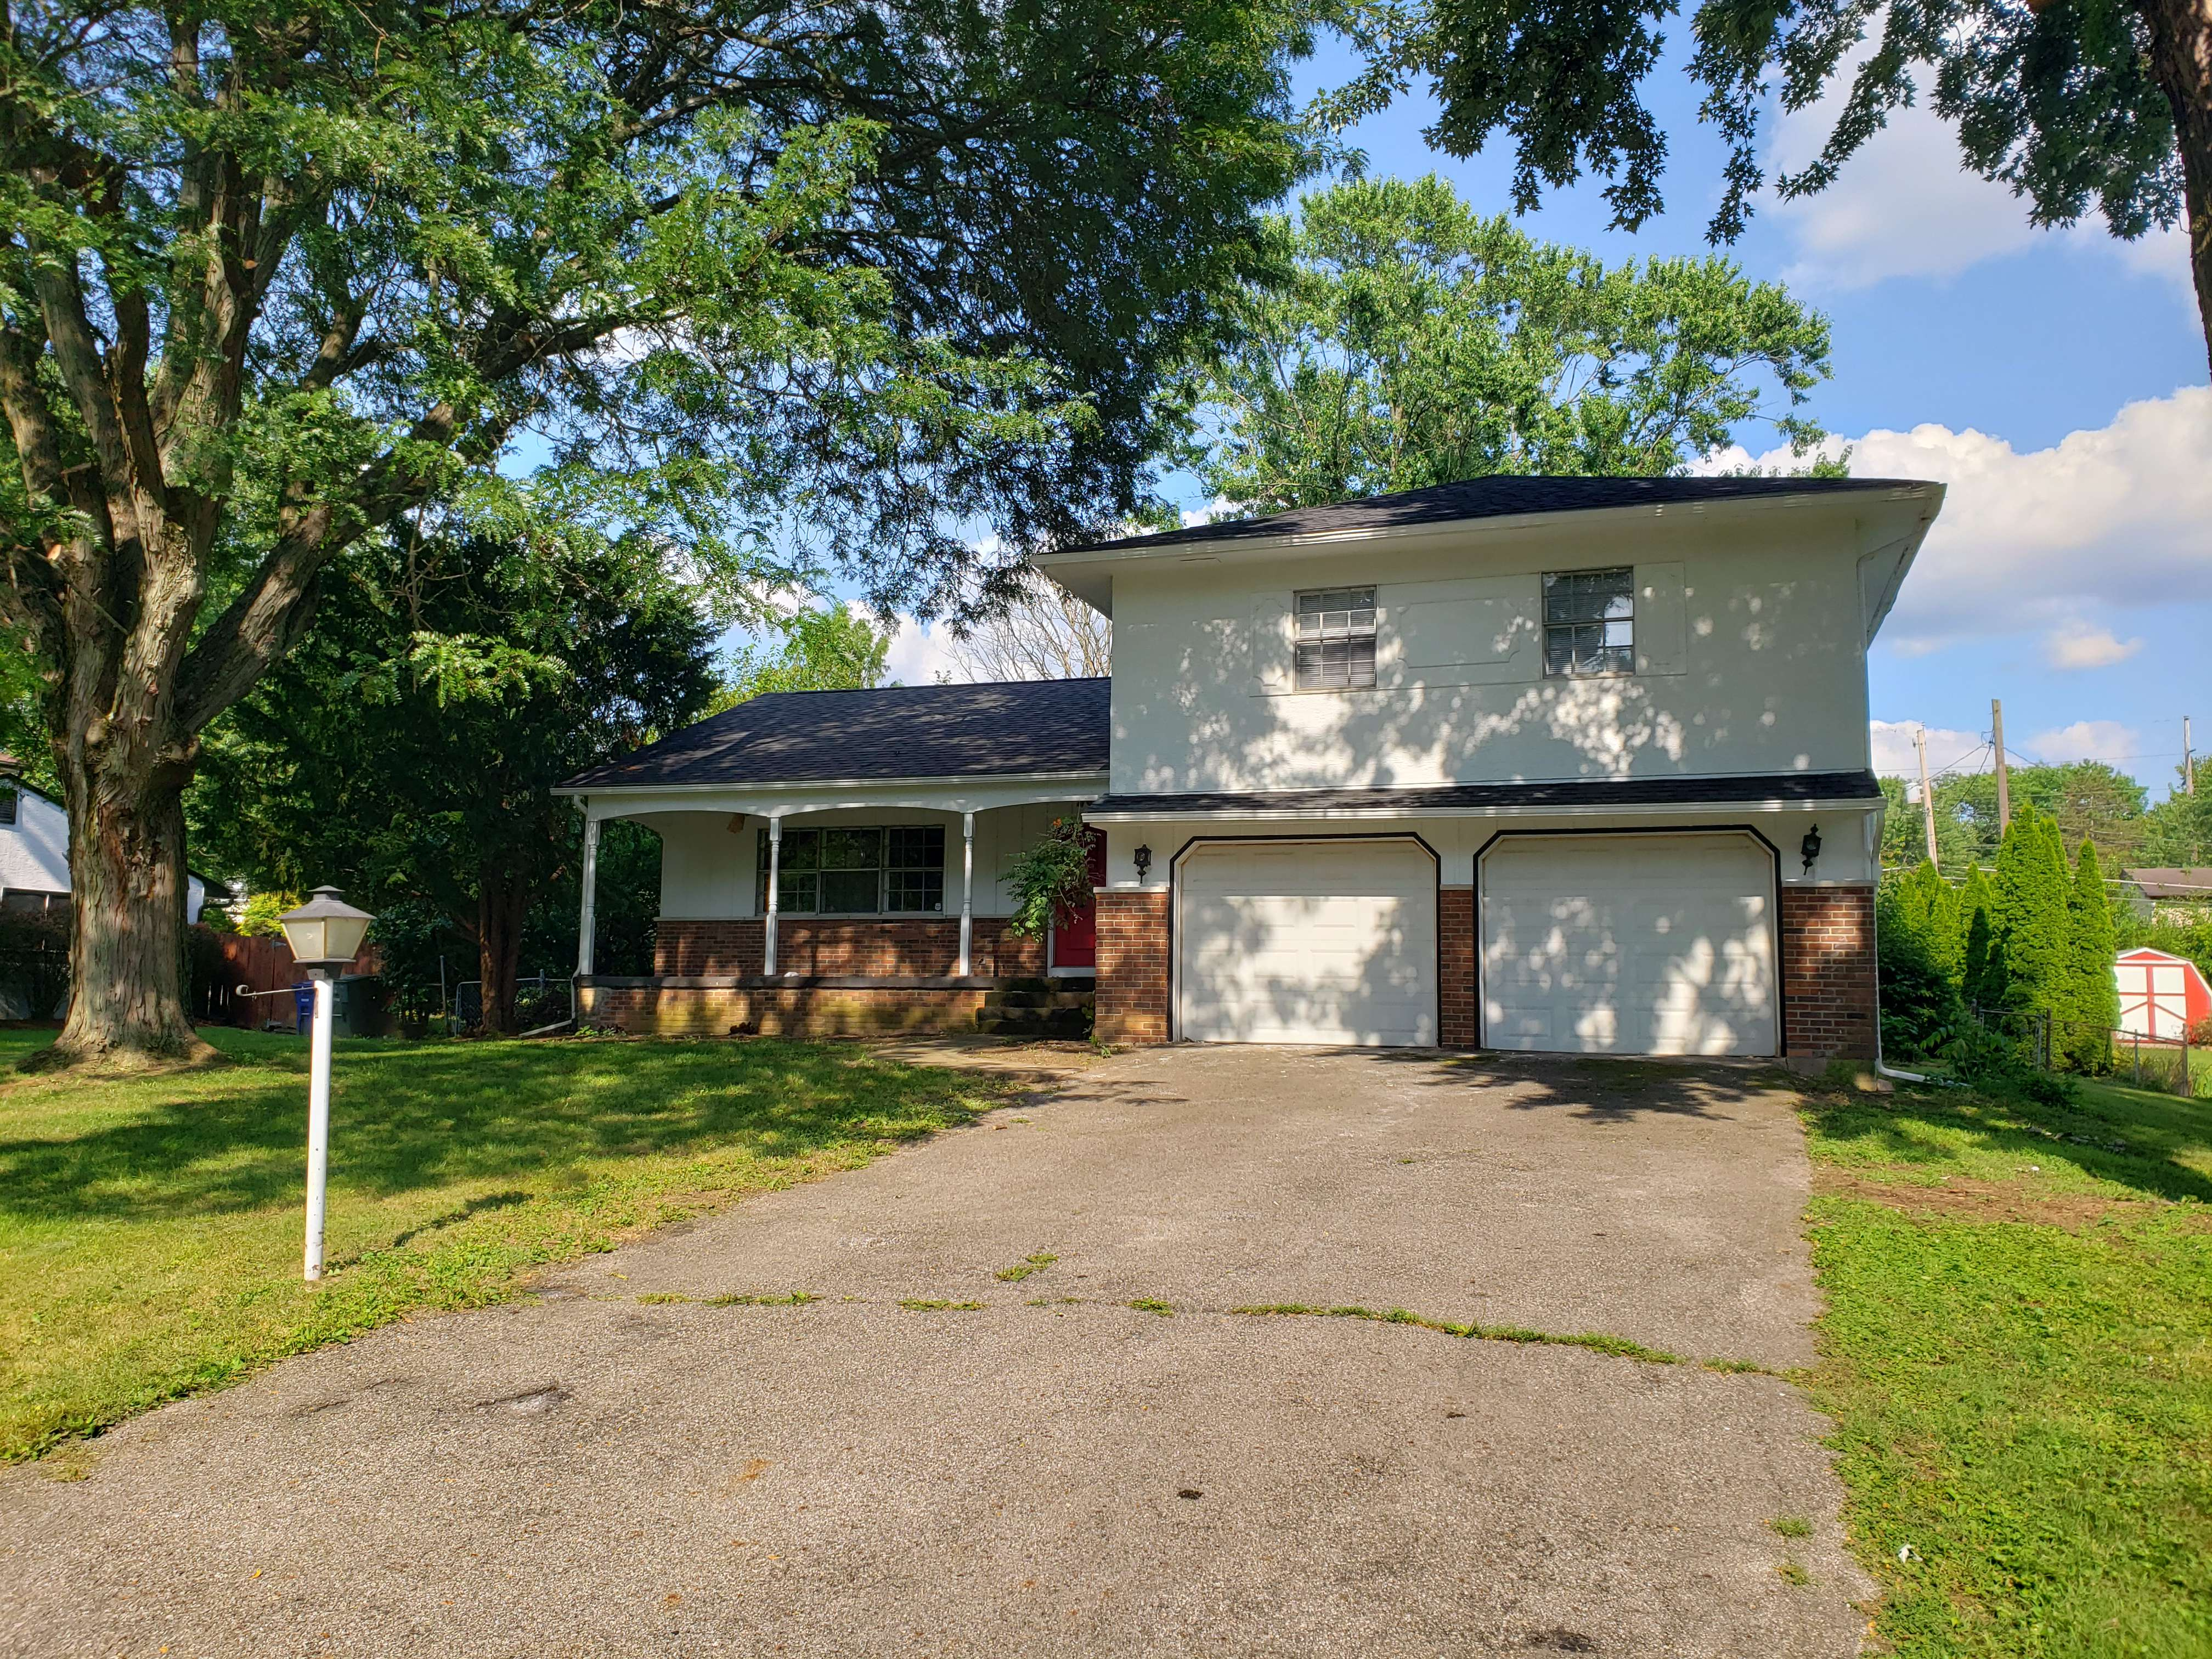 860-critchfield-rd-(ravenwood-subdivision)-columbus-ohio-43213